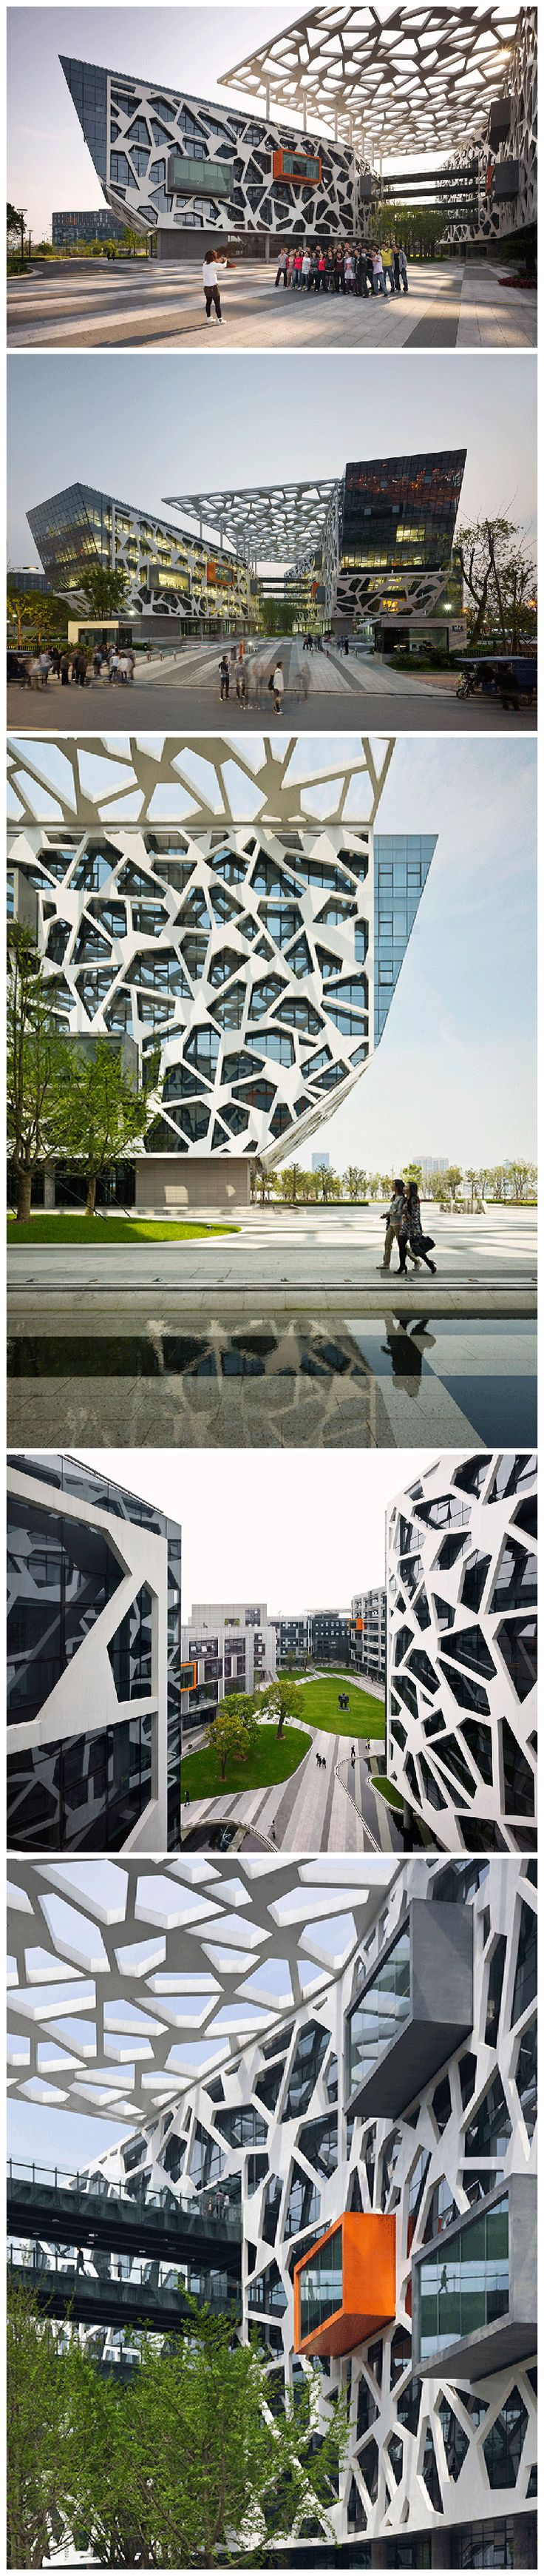 HASSEL designs alibaba headquarters as workplace benchmark